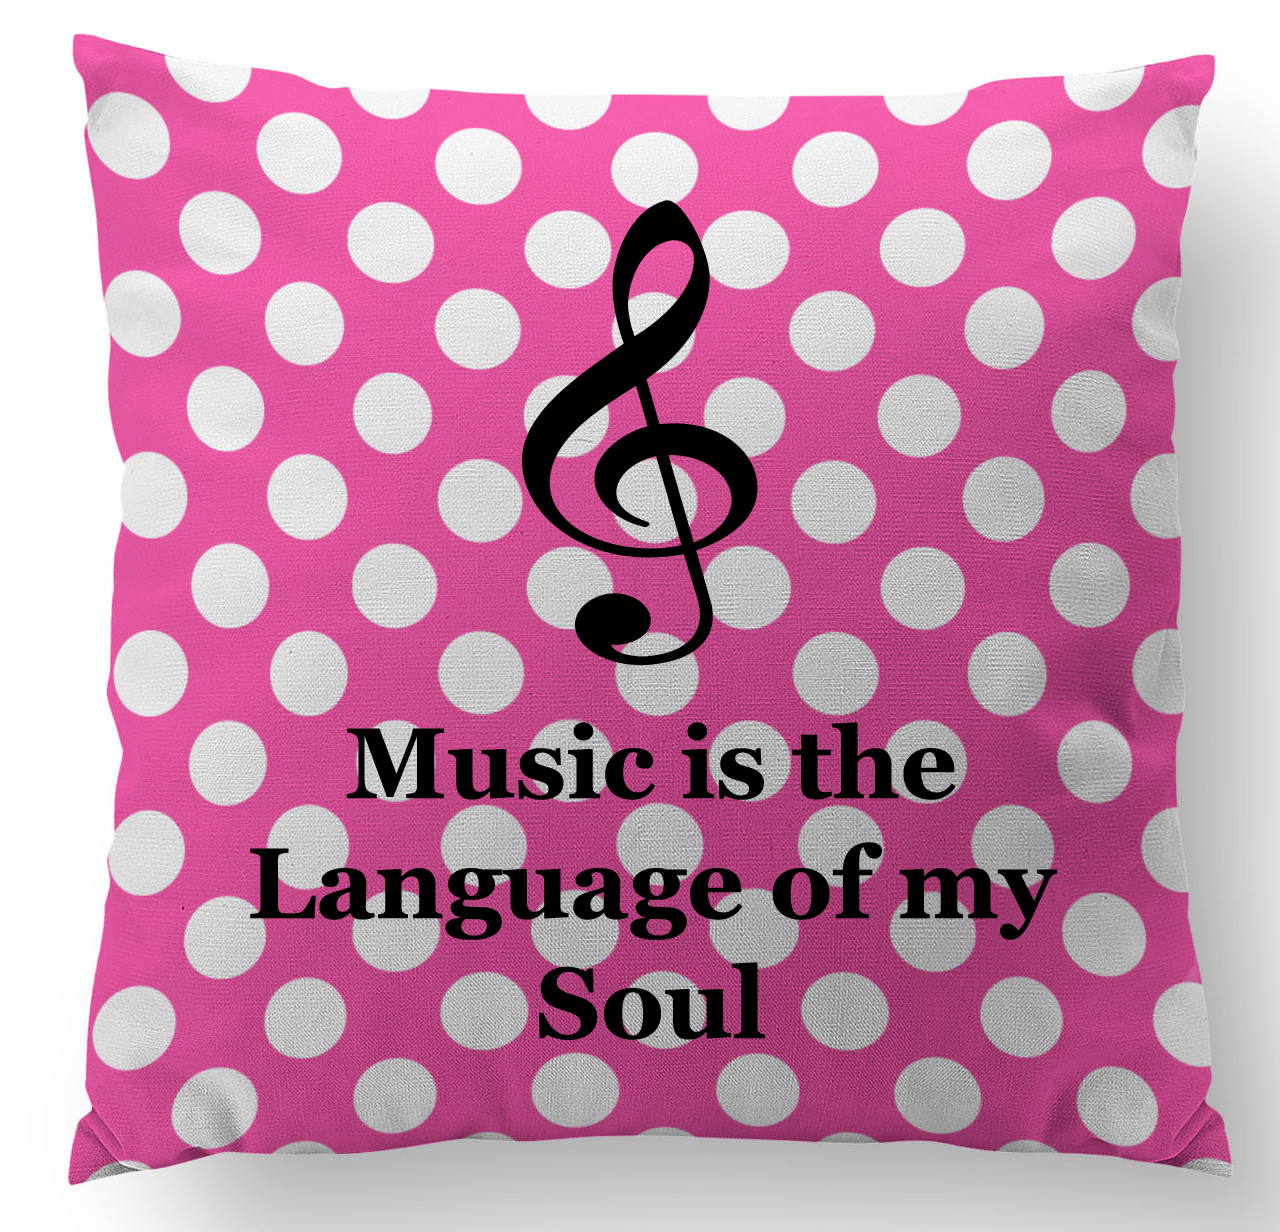 Music is the Language of My Soul Name Custom Designer Pillow